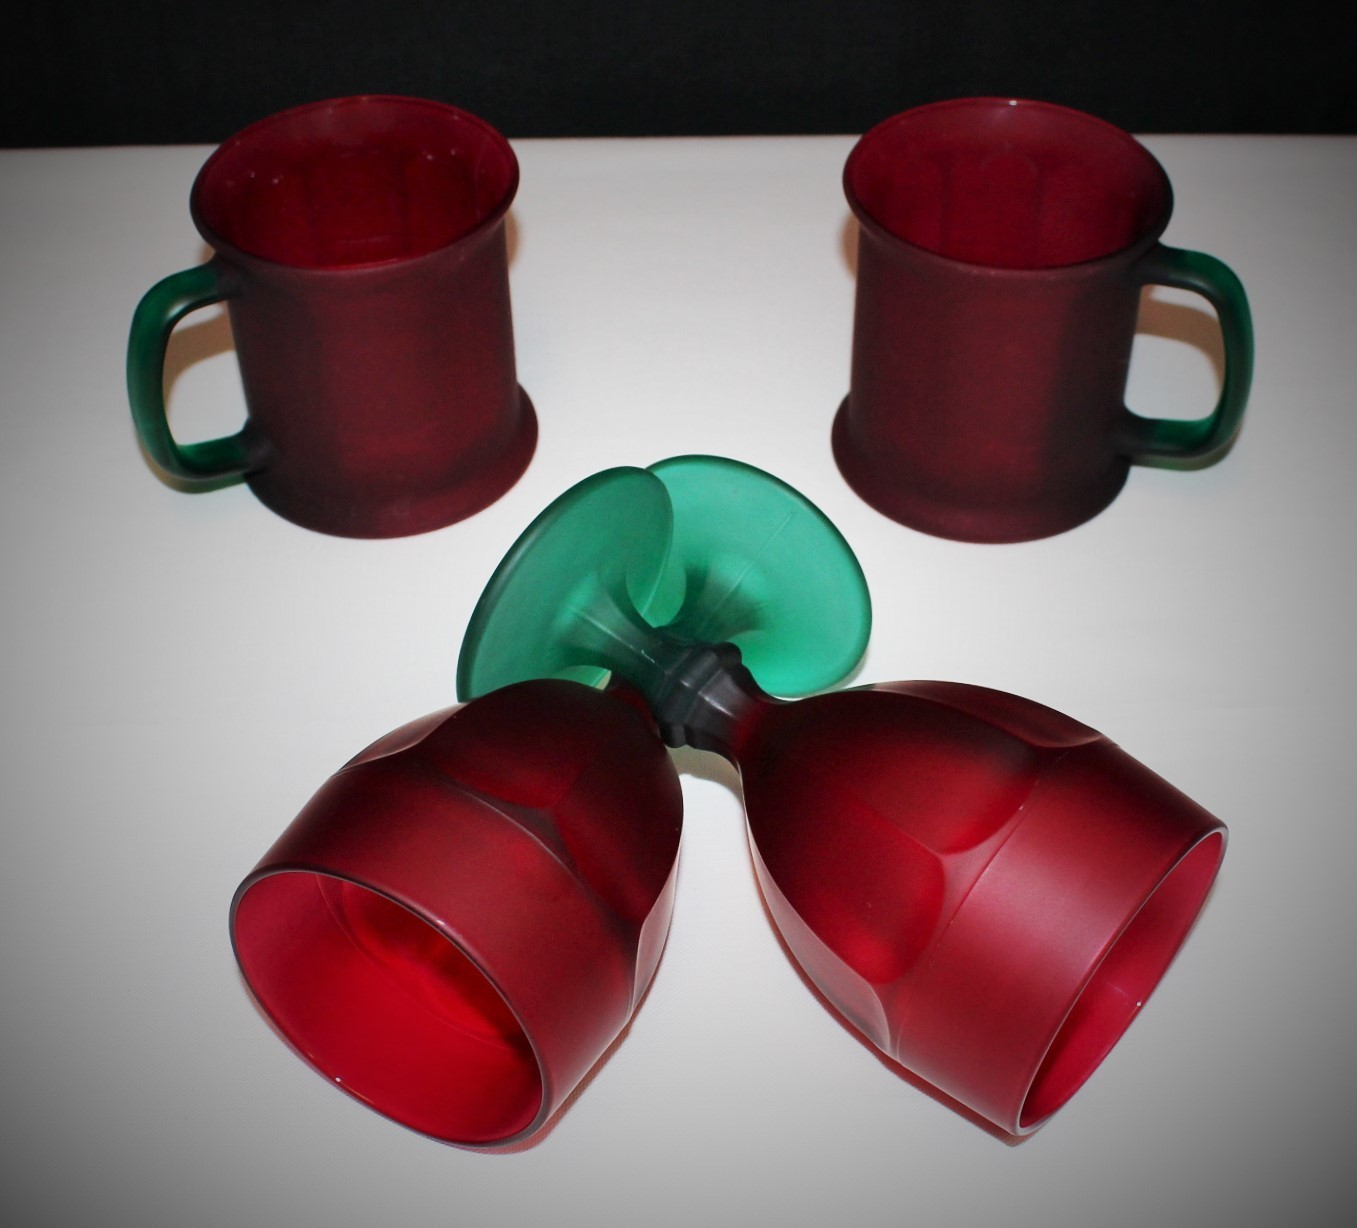 Set of 4 Libbey Duratuff (2) Goblets (2) Mugs Frosted Red/Green Satin Glassware